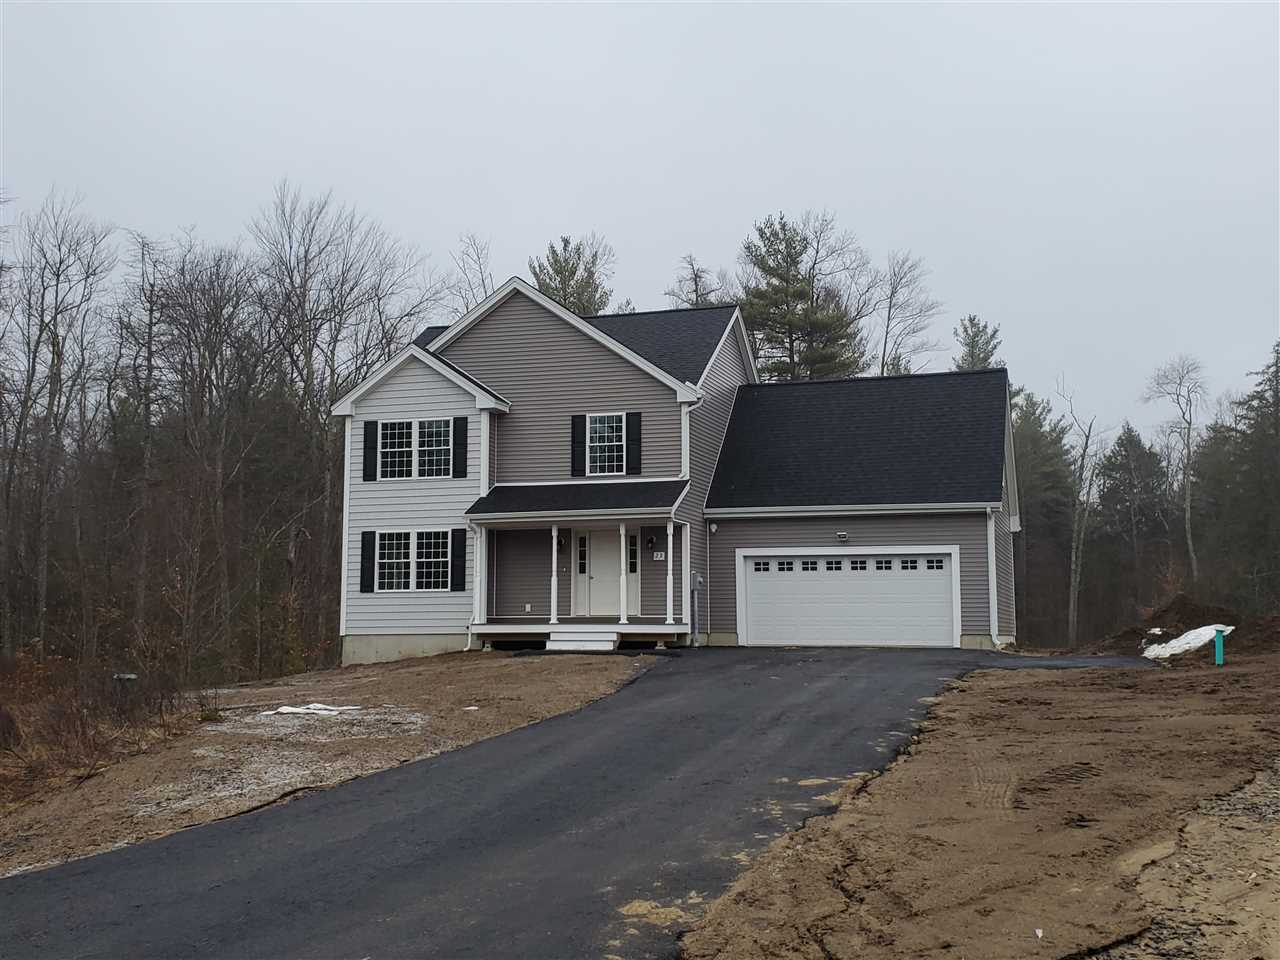 Photo of Lot#17 Peregrine Way Milford NH 03055